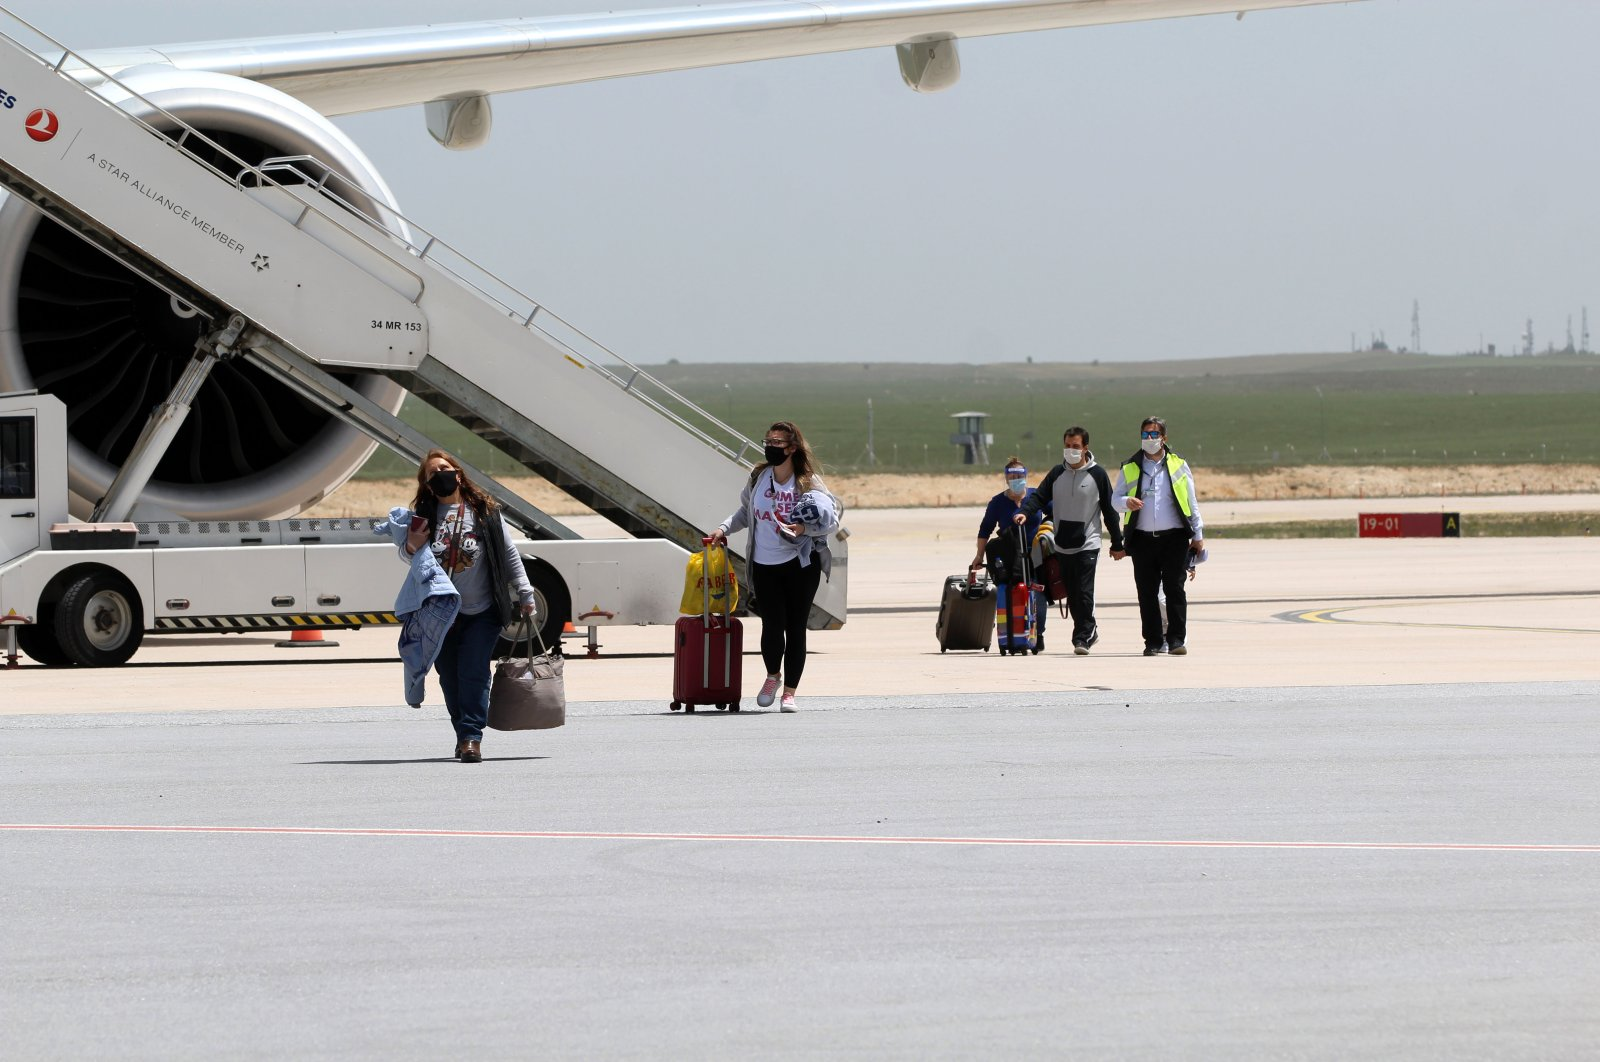 People wearing masks disembark a plane that arrived from the United States, in Sivas, Turkey, May 18, 2020. (AA Photo)